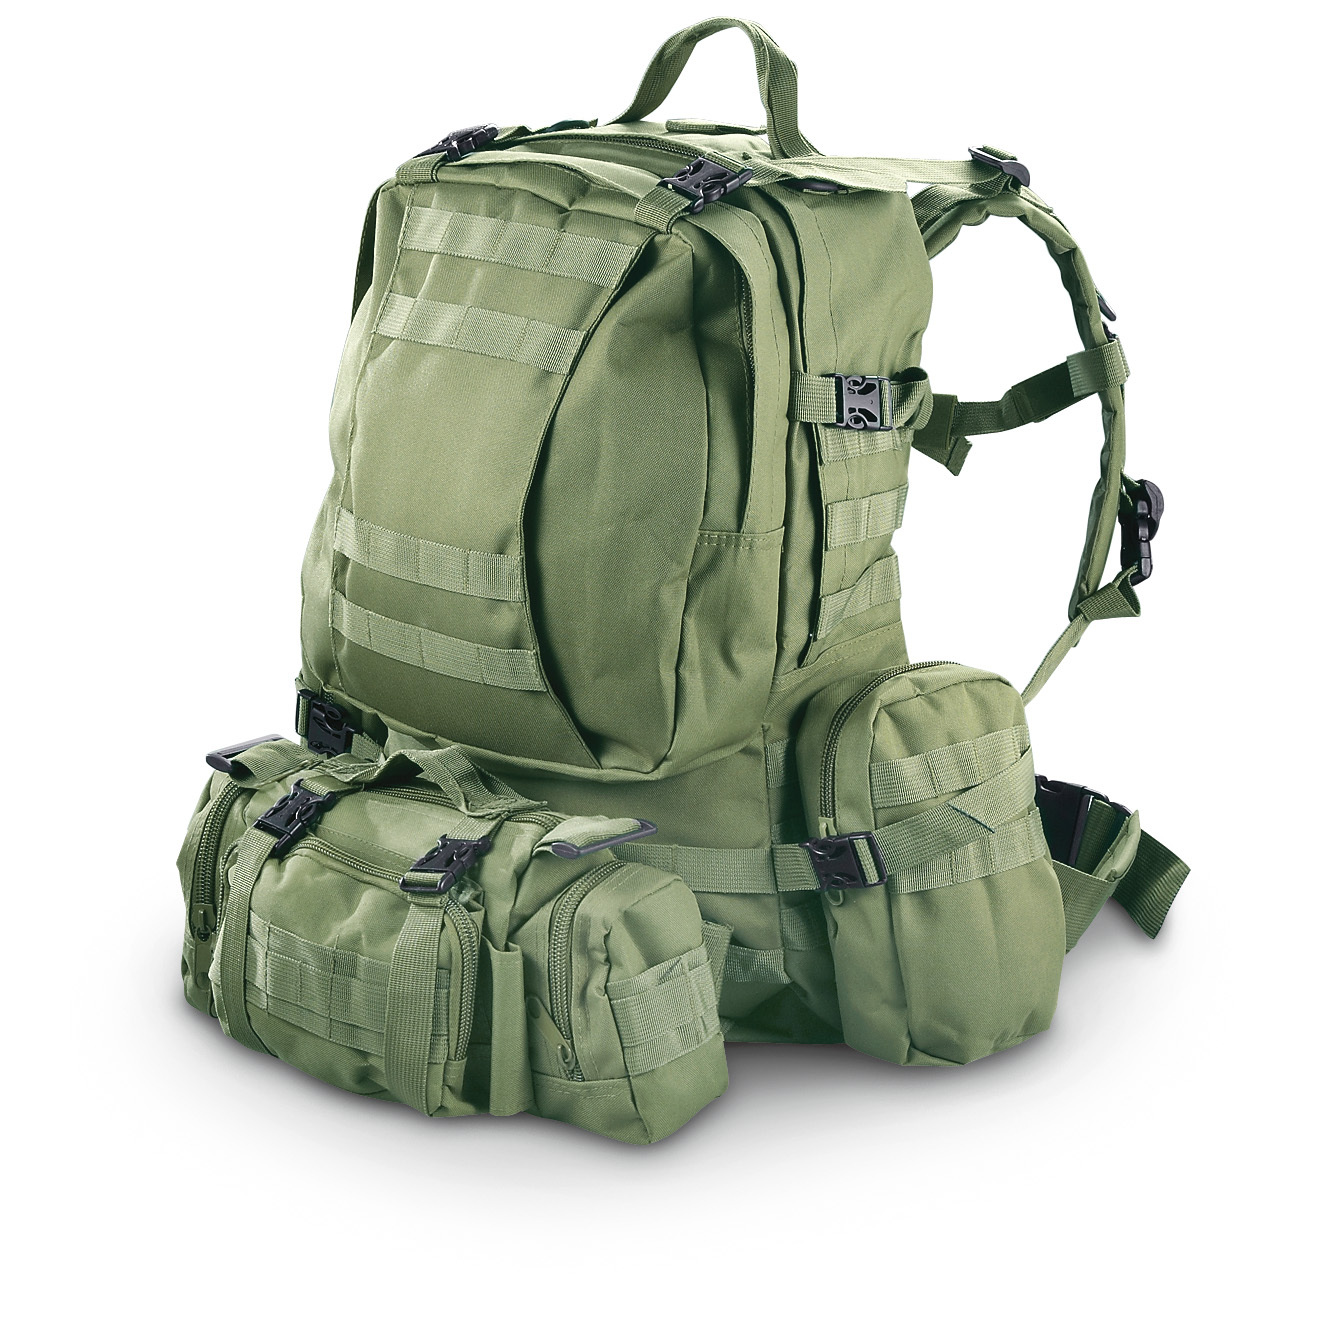 "Military Tactical Assault Rucksack. Big hauling for your next mission! Be prepared! This Military Tactical Rucksack is ready to dish out primo storage on the trail or in the field. Side pouches and waist Shooter's Bag are detachable to customize your load. Your choice of 9 camo colors!The right stuff:Heavy-duty CORDURA nylon 2 large main compartments with a total capacity of 1,600 cubic inches M.O.L.L.E. compatible Padded back and shoulder pads for long-lasting comfort on the trail Heavyweight zippers and buckles Adjustable padded waist belt 2 detachable zip pouches on sides, 5 x 2 x 8""h. each Detachable multi-pocket M.O.L.L.E. Shooters Bag with waist belt. Measures 21 x 12 x 8"" (no pouches), Measures 21 x 18 x 11 (with pouches attached). Weighs 2 lbs., 6 ozs.!!! Limited Quantities !!! - $49.99"